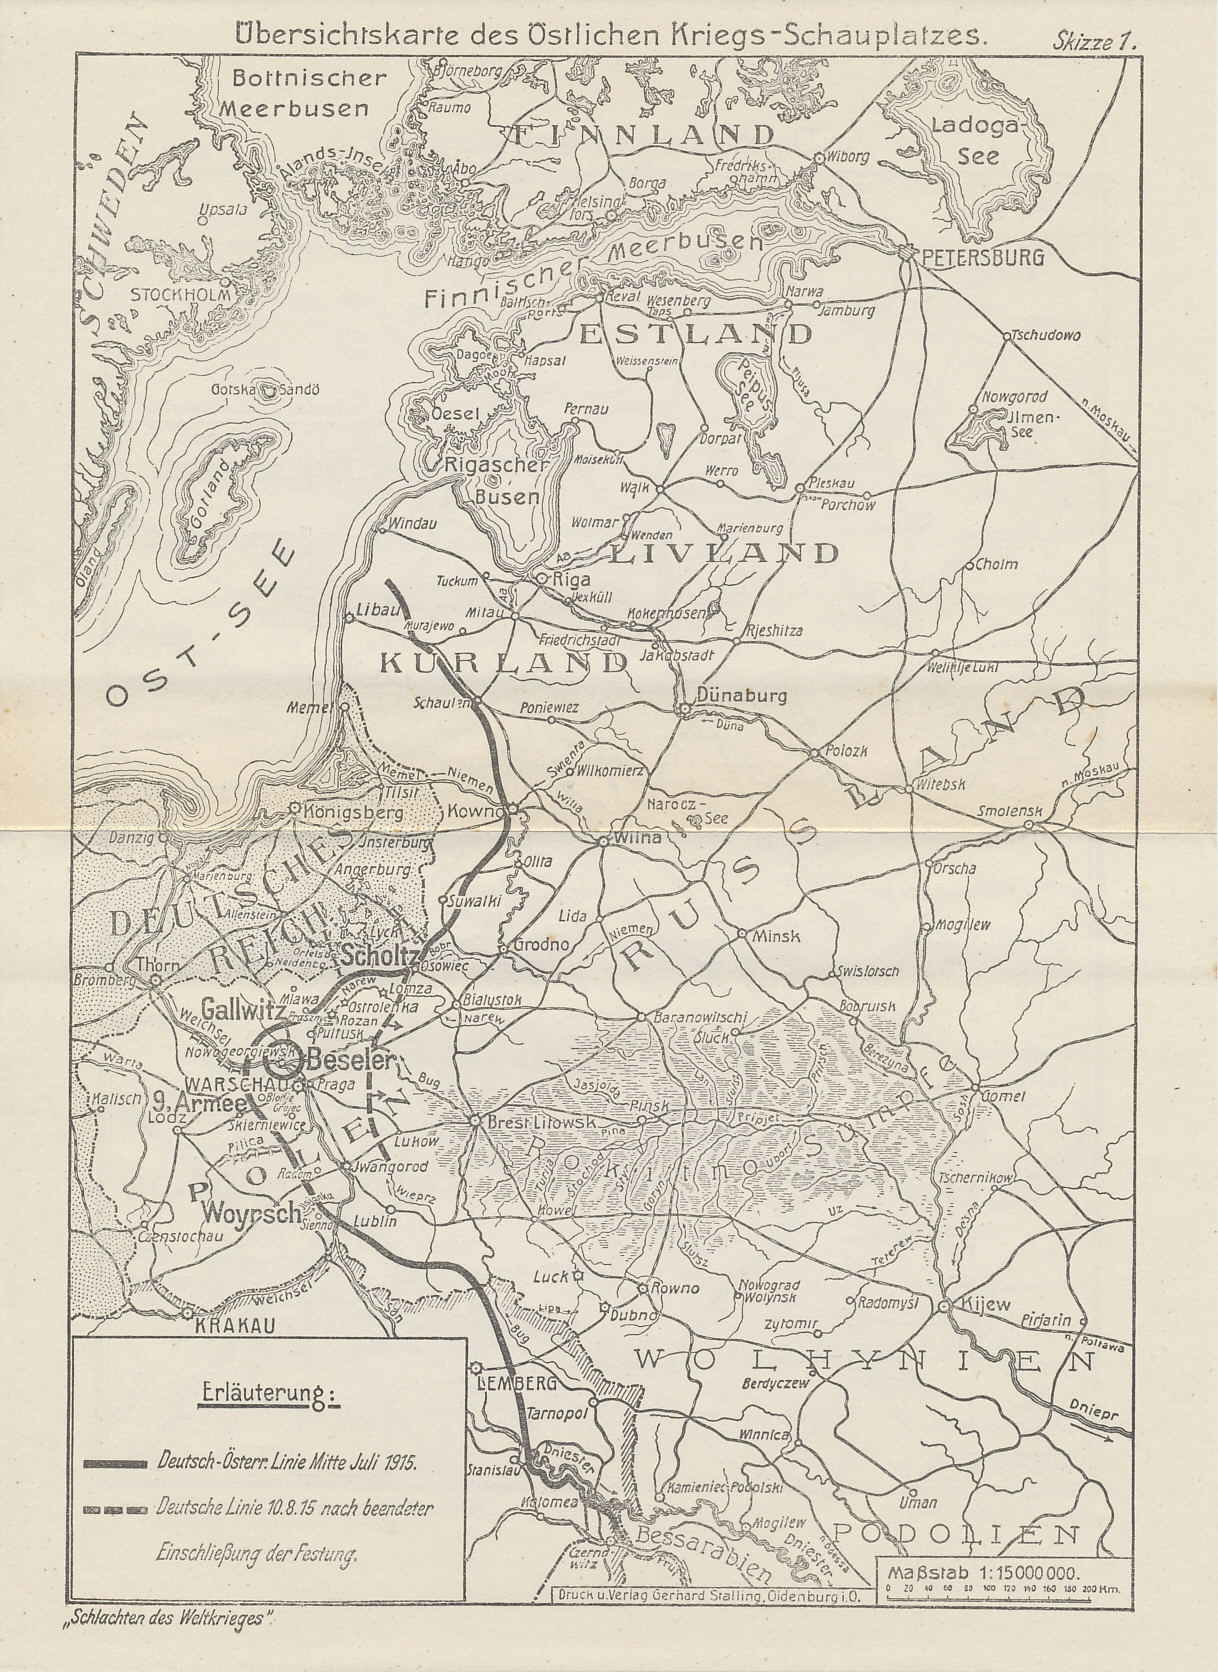 Map of the Eastern Front, mid-July, 1915 from The Capture of Novo Georgievsk, Volume 8 of the Reichsarchive history Battles of the World War.